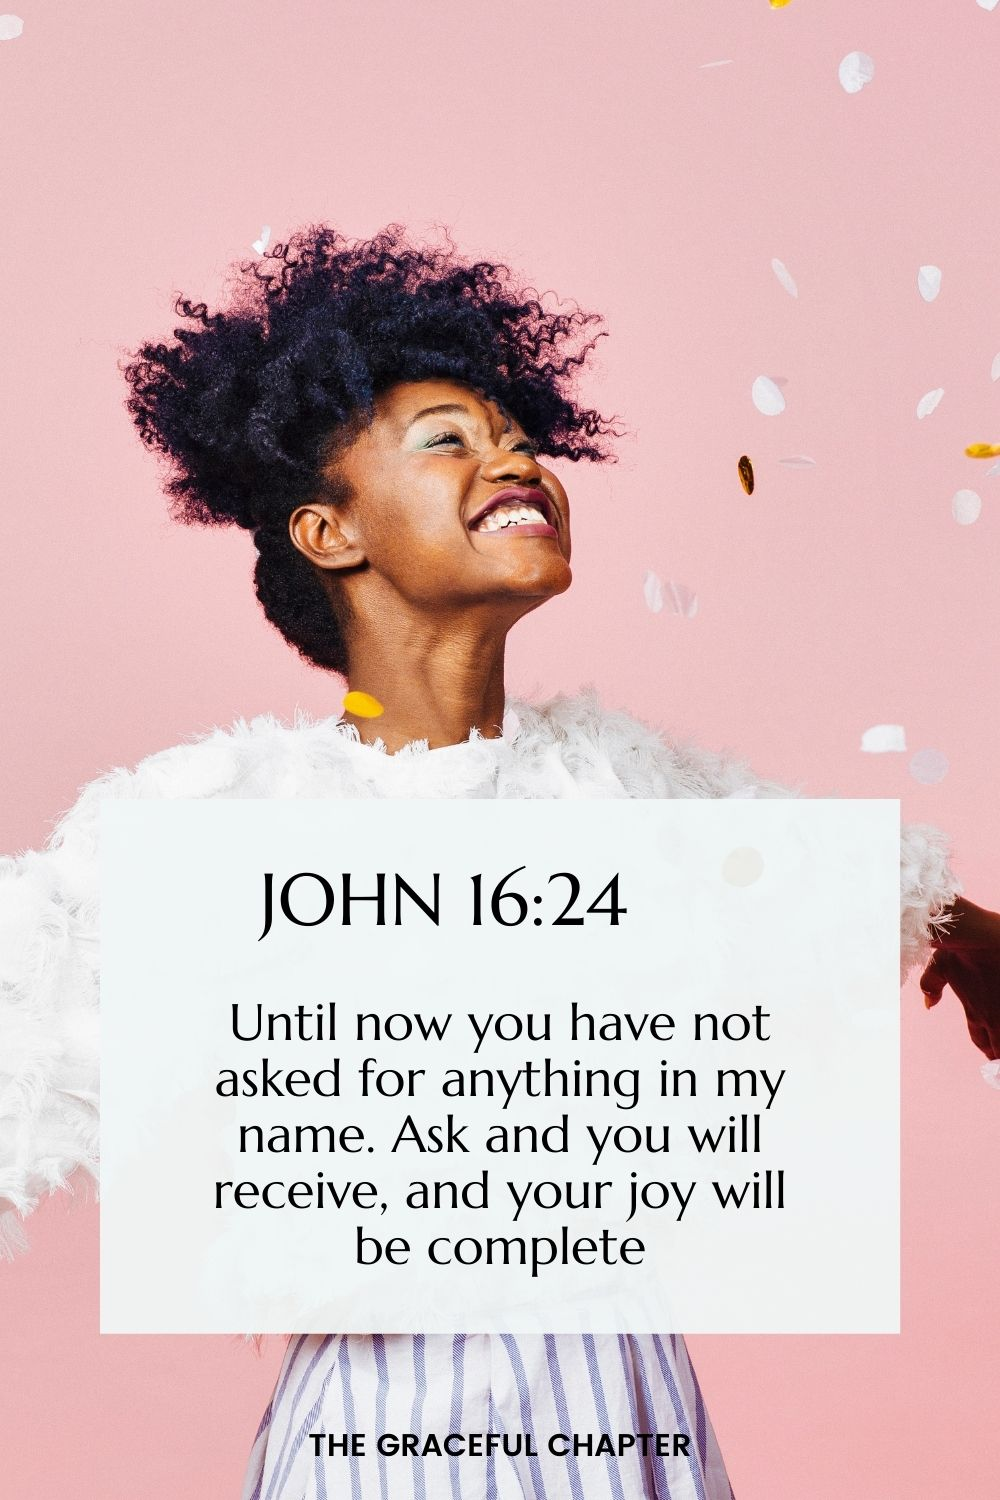 Until now you have not asked for anything in my name. Ask and you will receive, and your joy will be complete. John 16:24